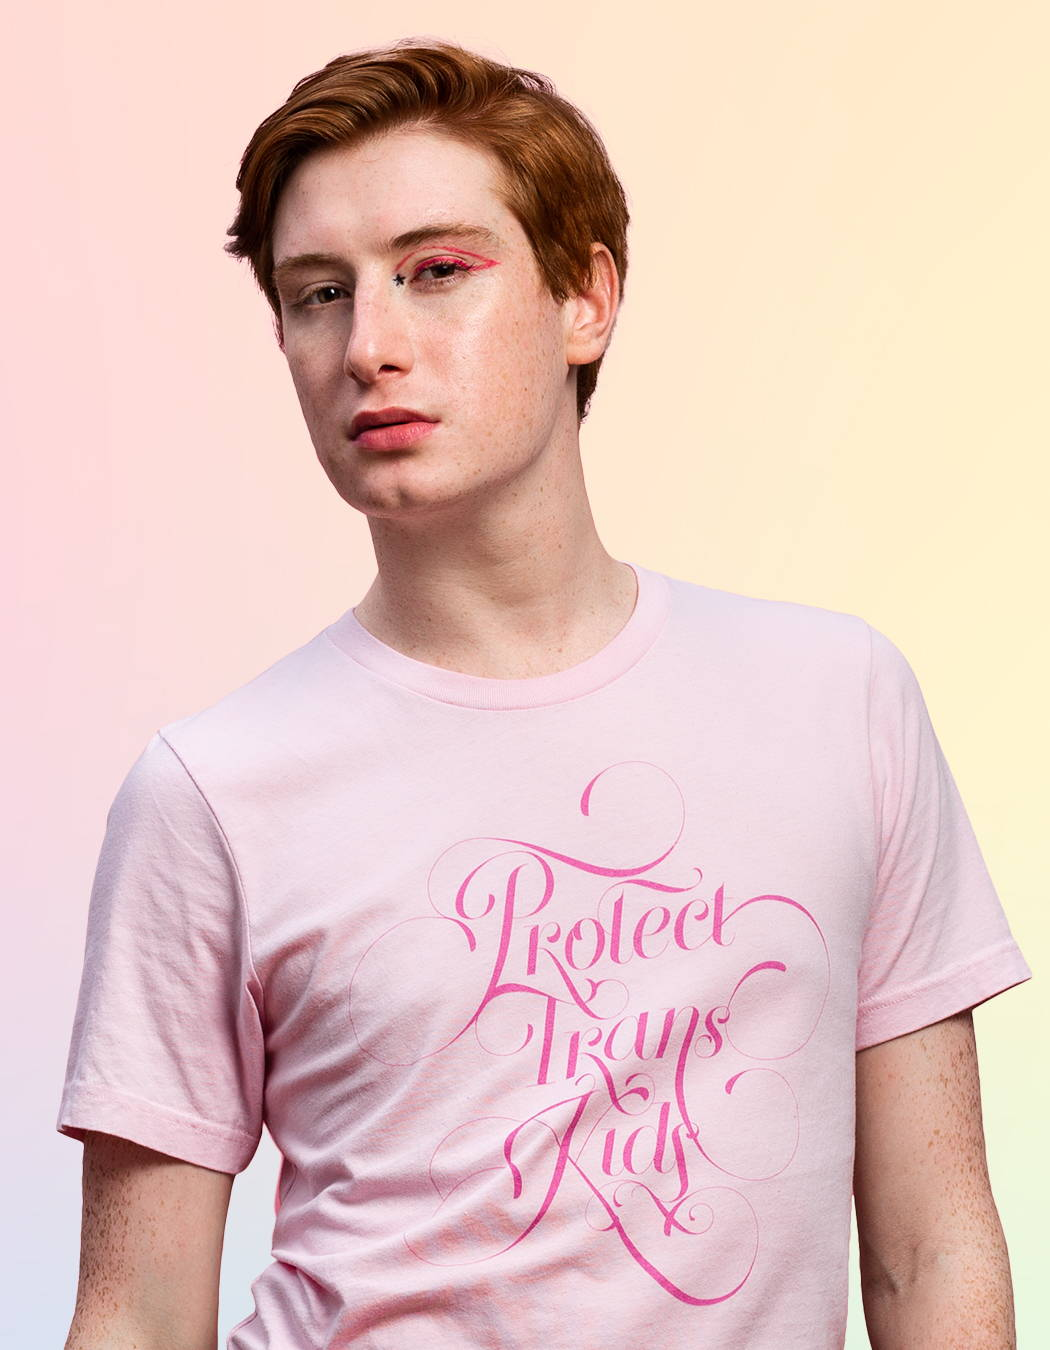 Protect Trans Kids Tee